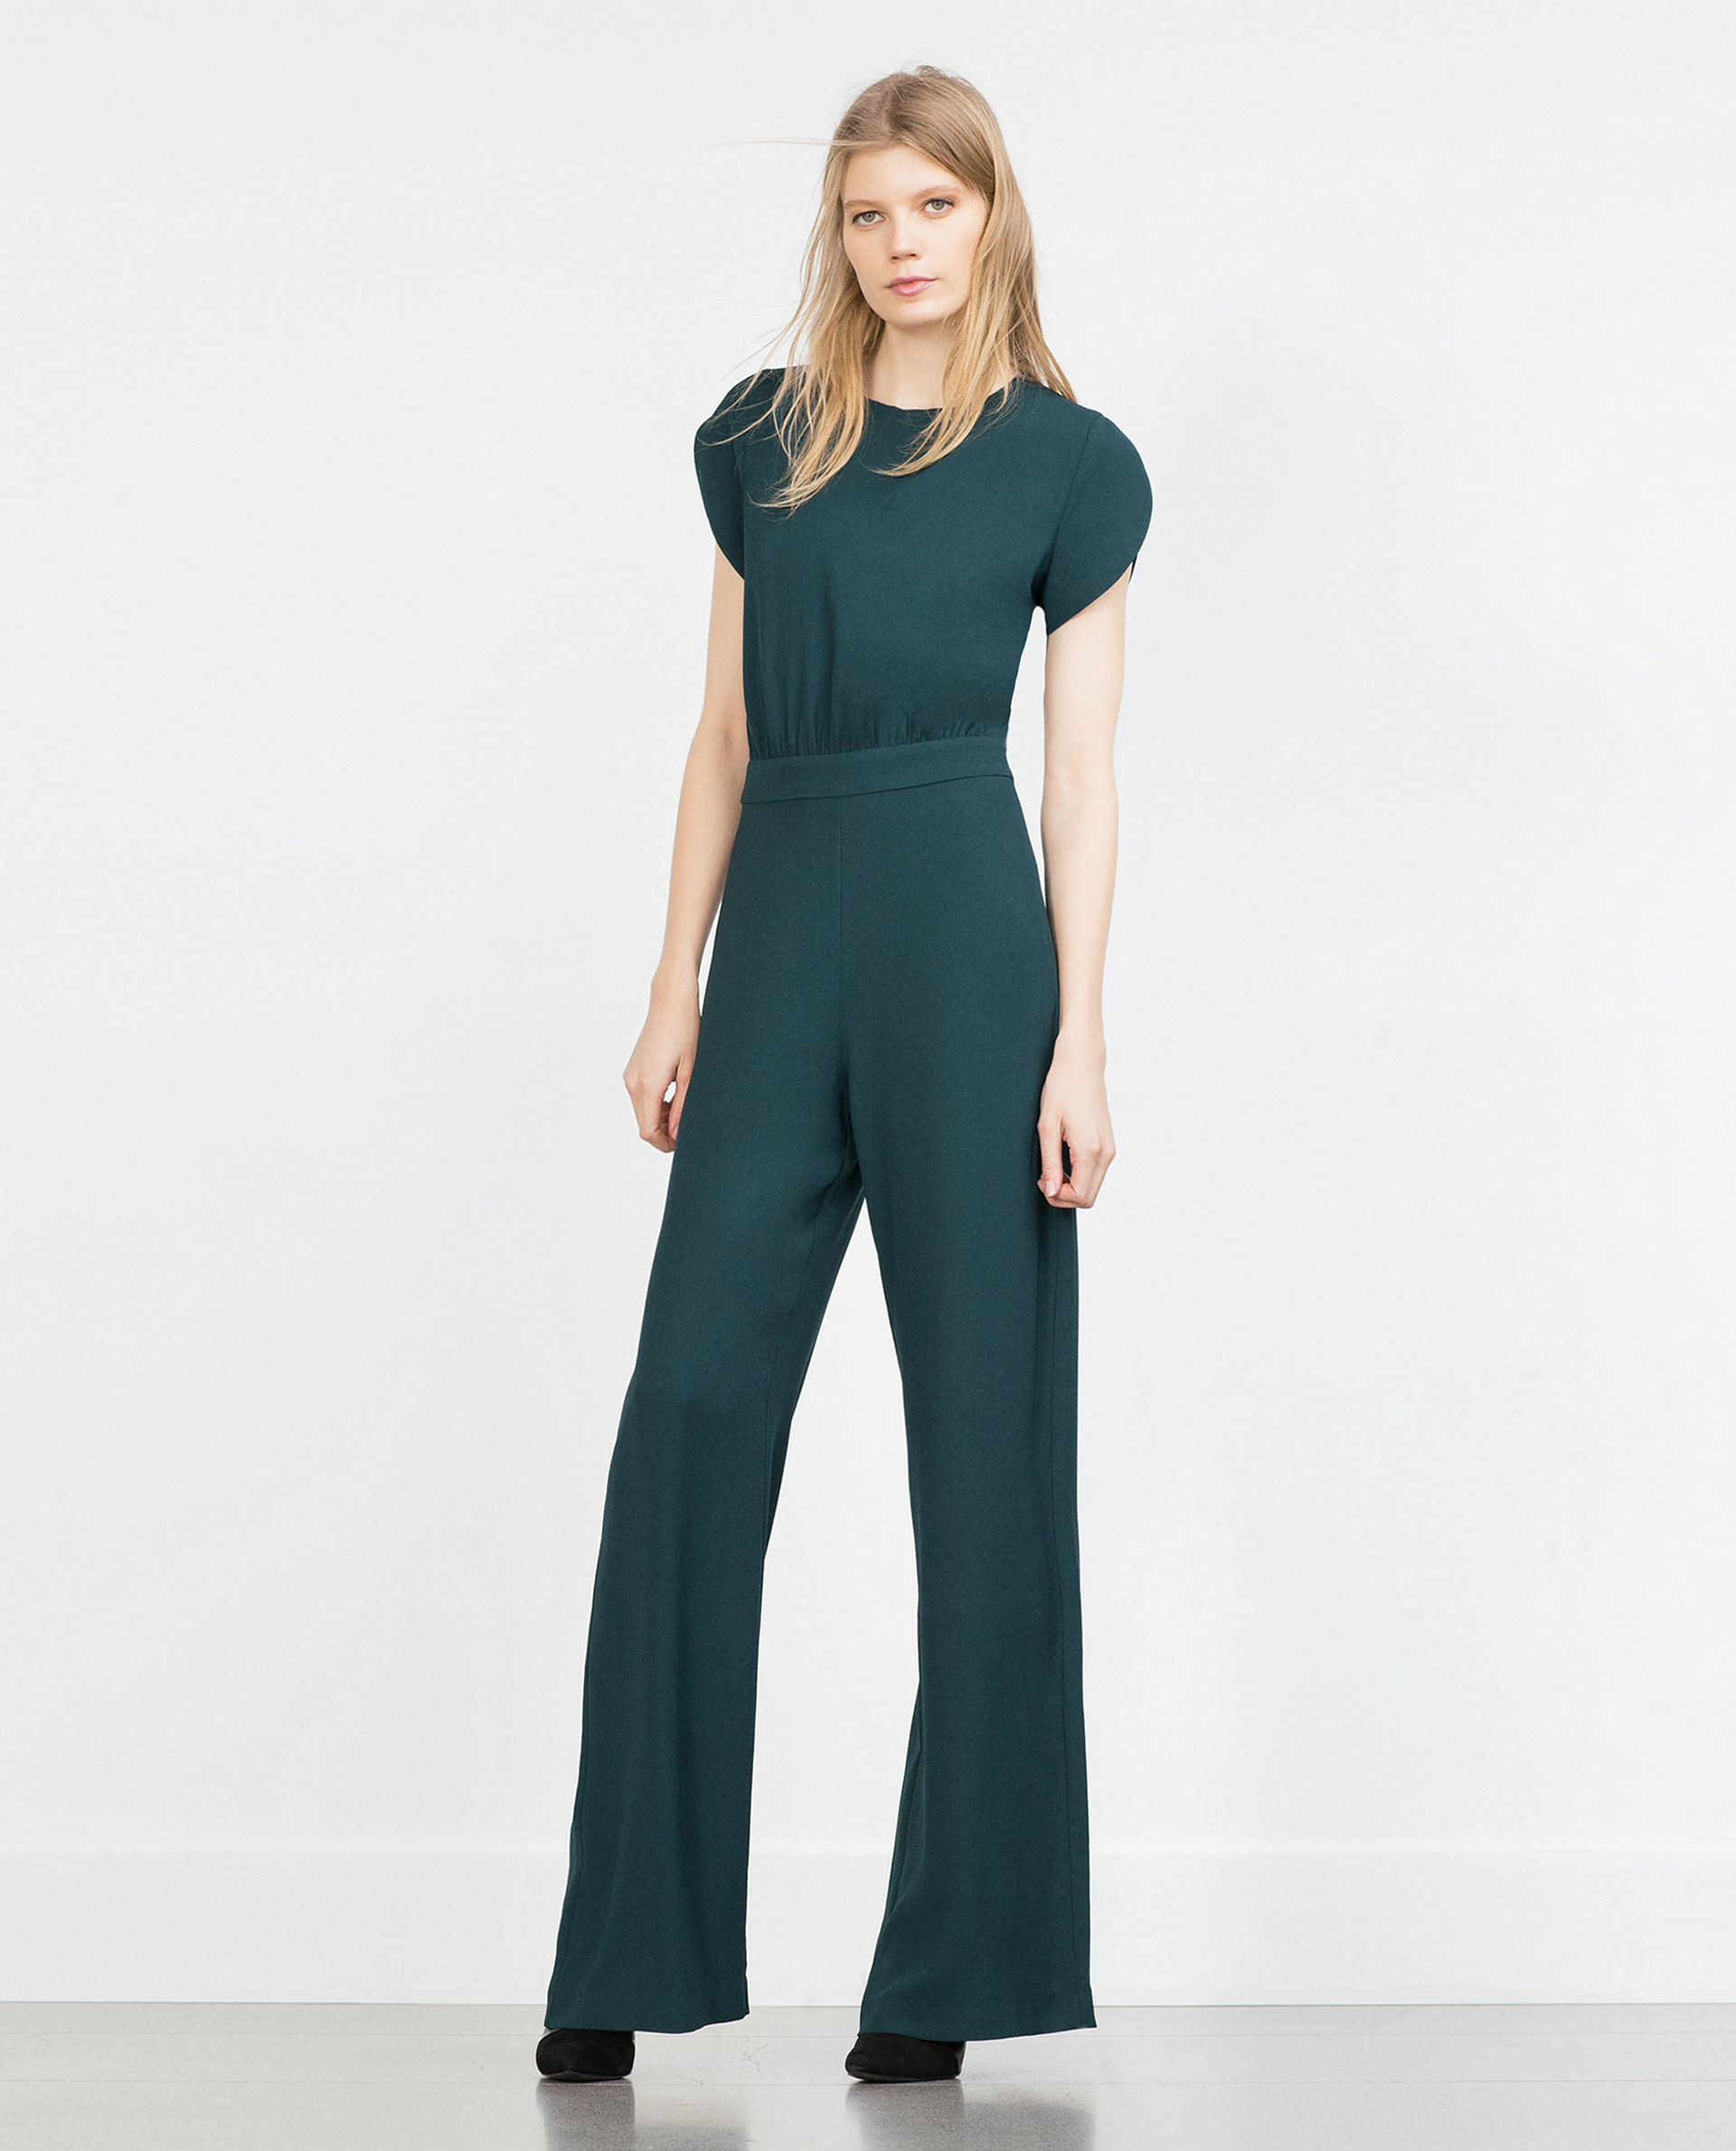 Model Marie Claires Zanna Roberts Rassi Visited TODAY Thursday To Prove That Women Of Every Age At Every Size Can Wear  Pick A Pattern You Love And Prepare Yourself For Compliments! Try Zara Floral Jumpsuit With Lapel Collar, $100 Believe It